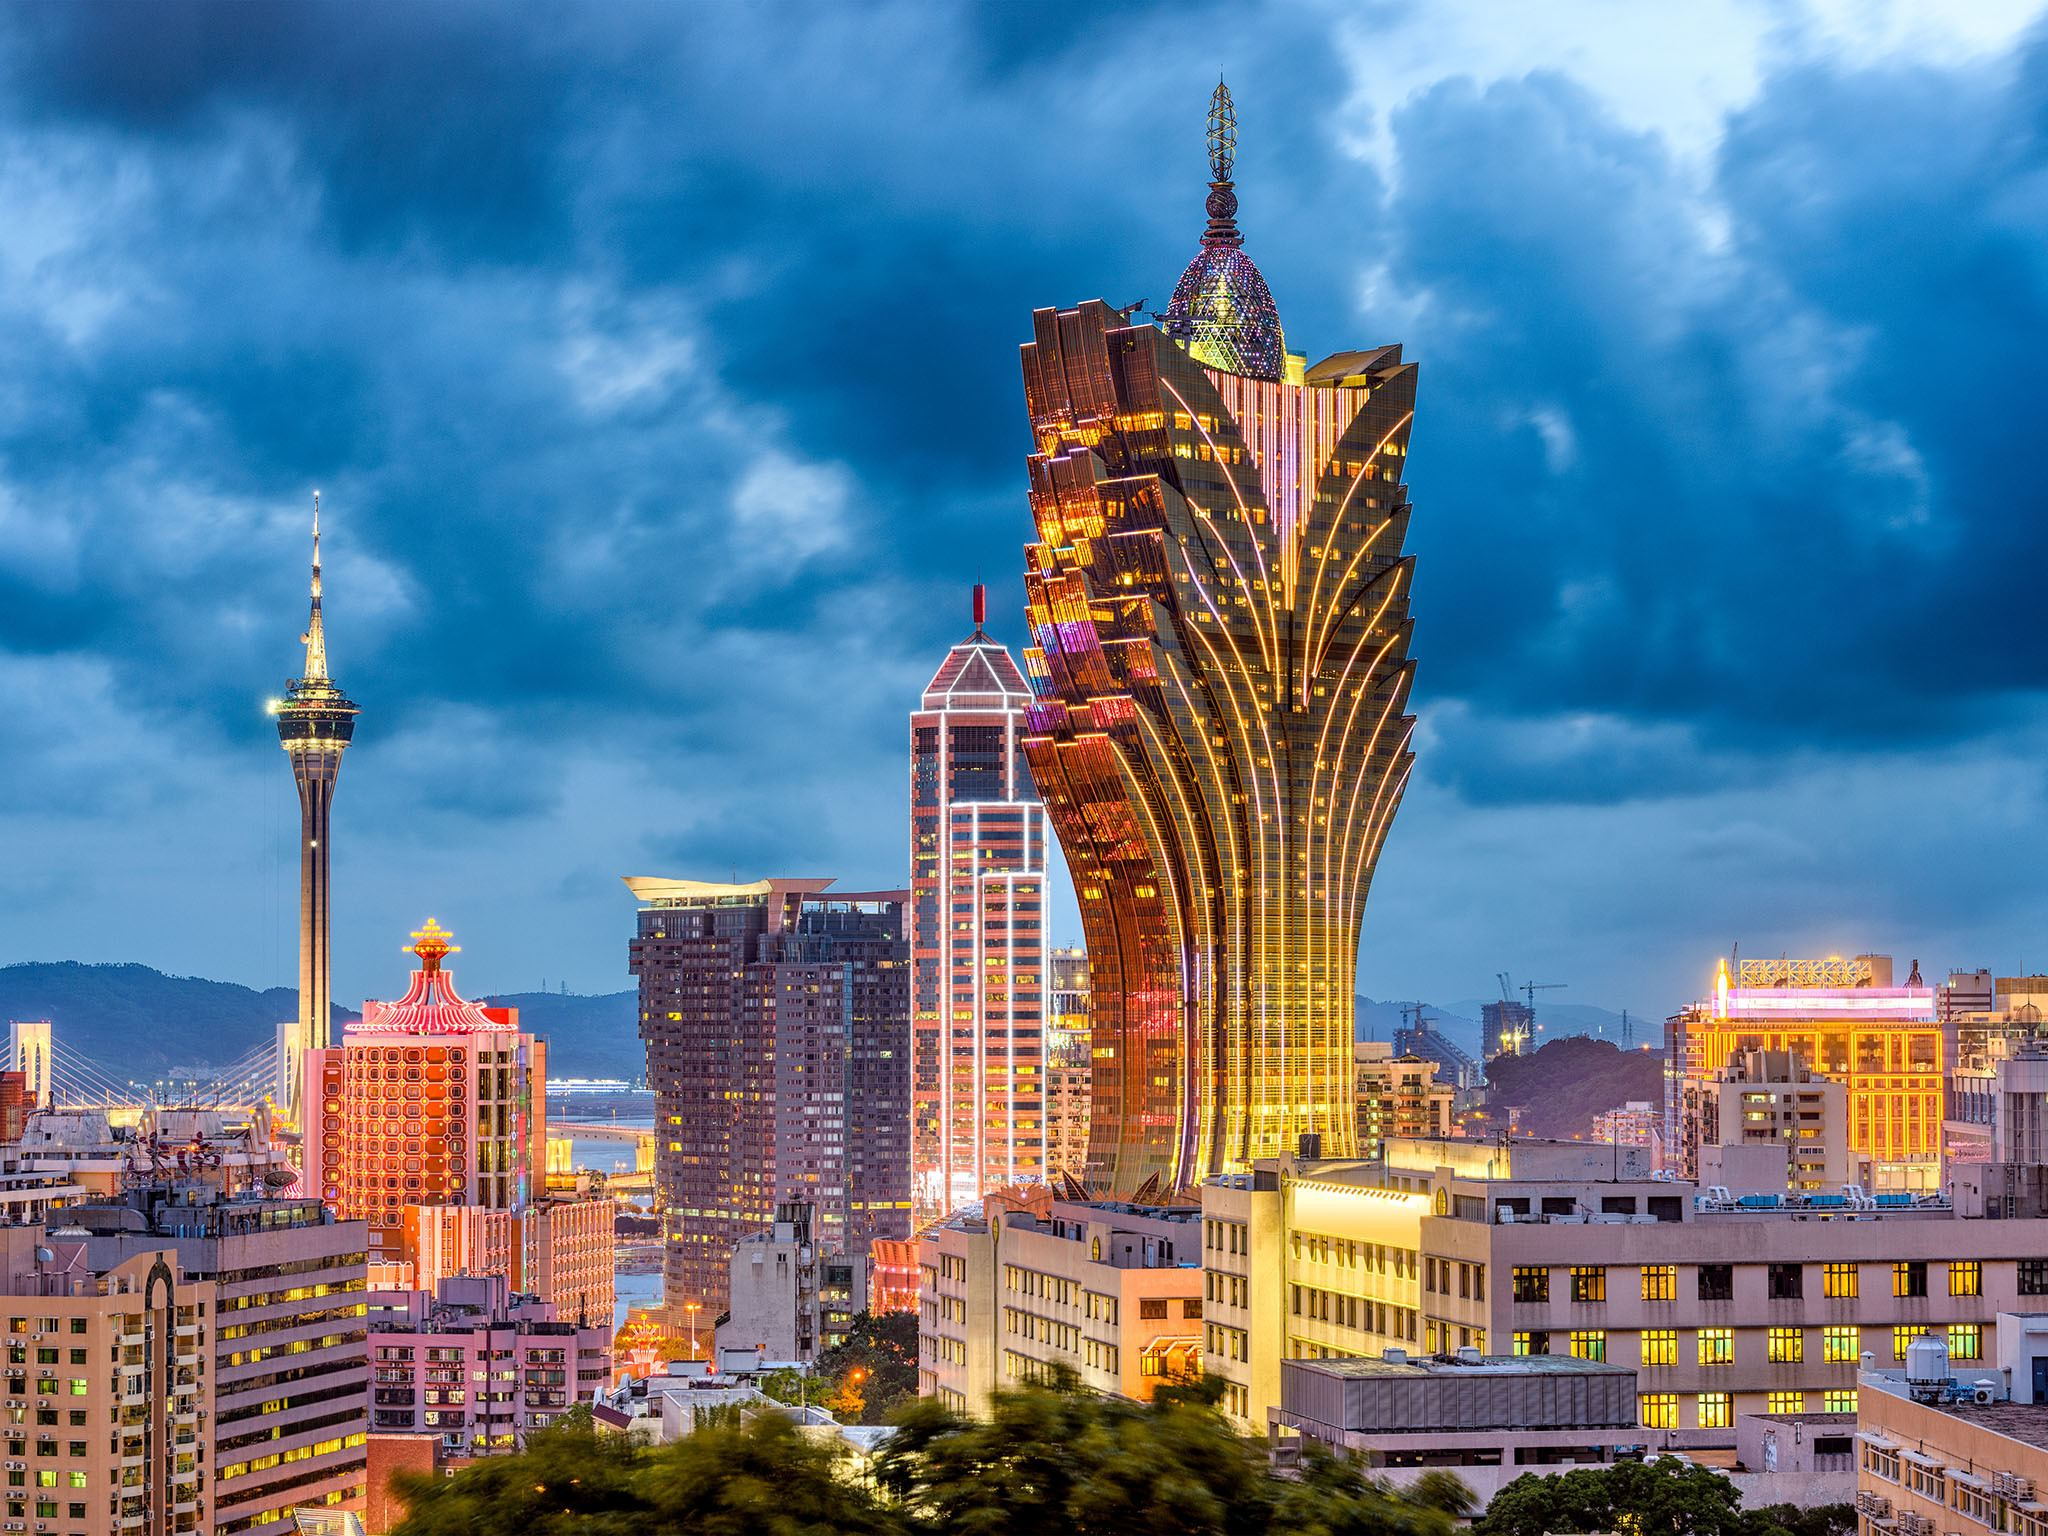 Macau Casino Revenue Fell 8.5 Percent in November